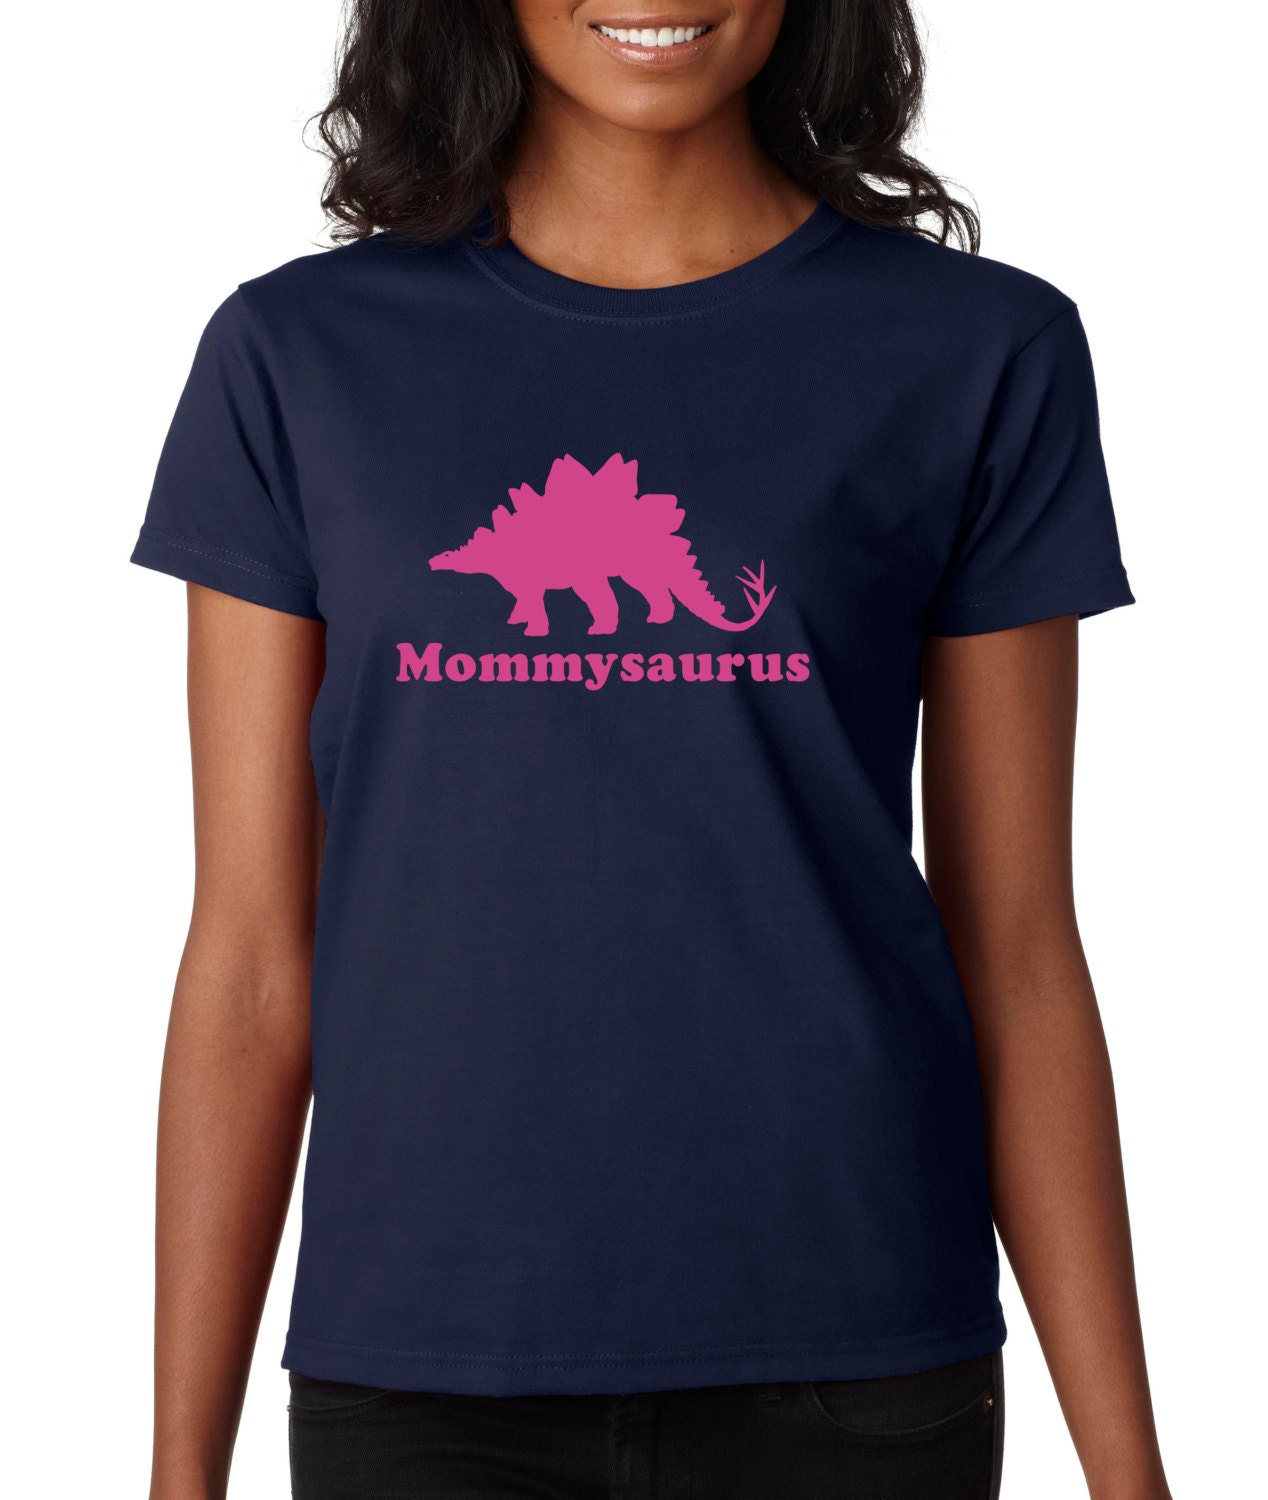 Mommy dinosaur t shirt Mothers day gift personalized adult